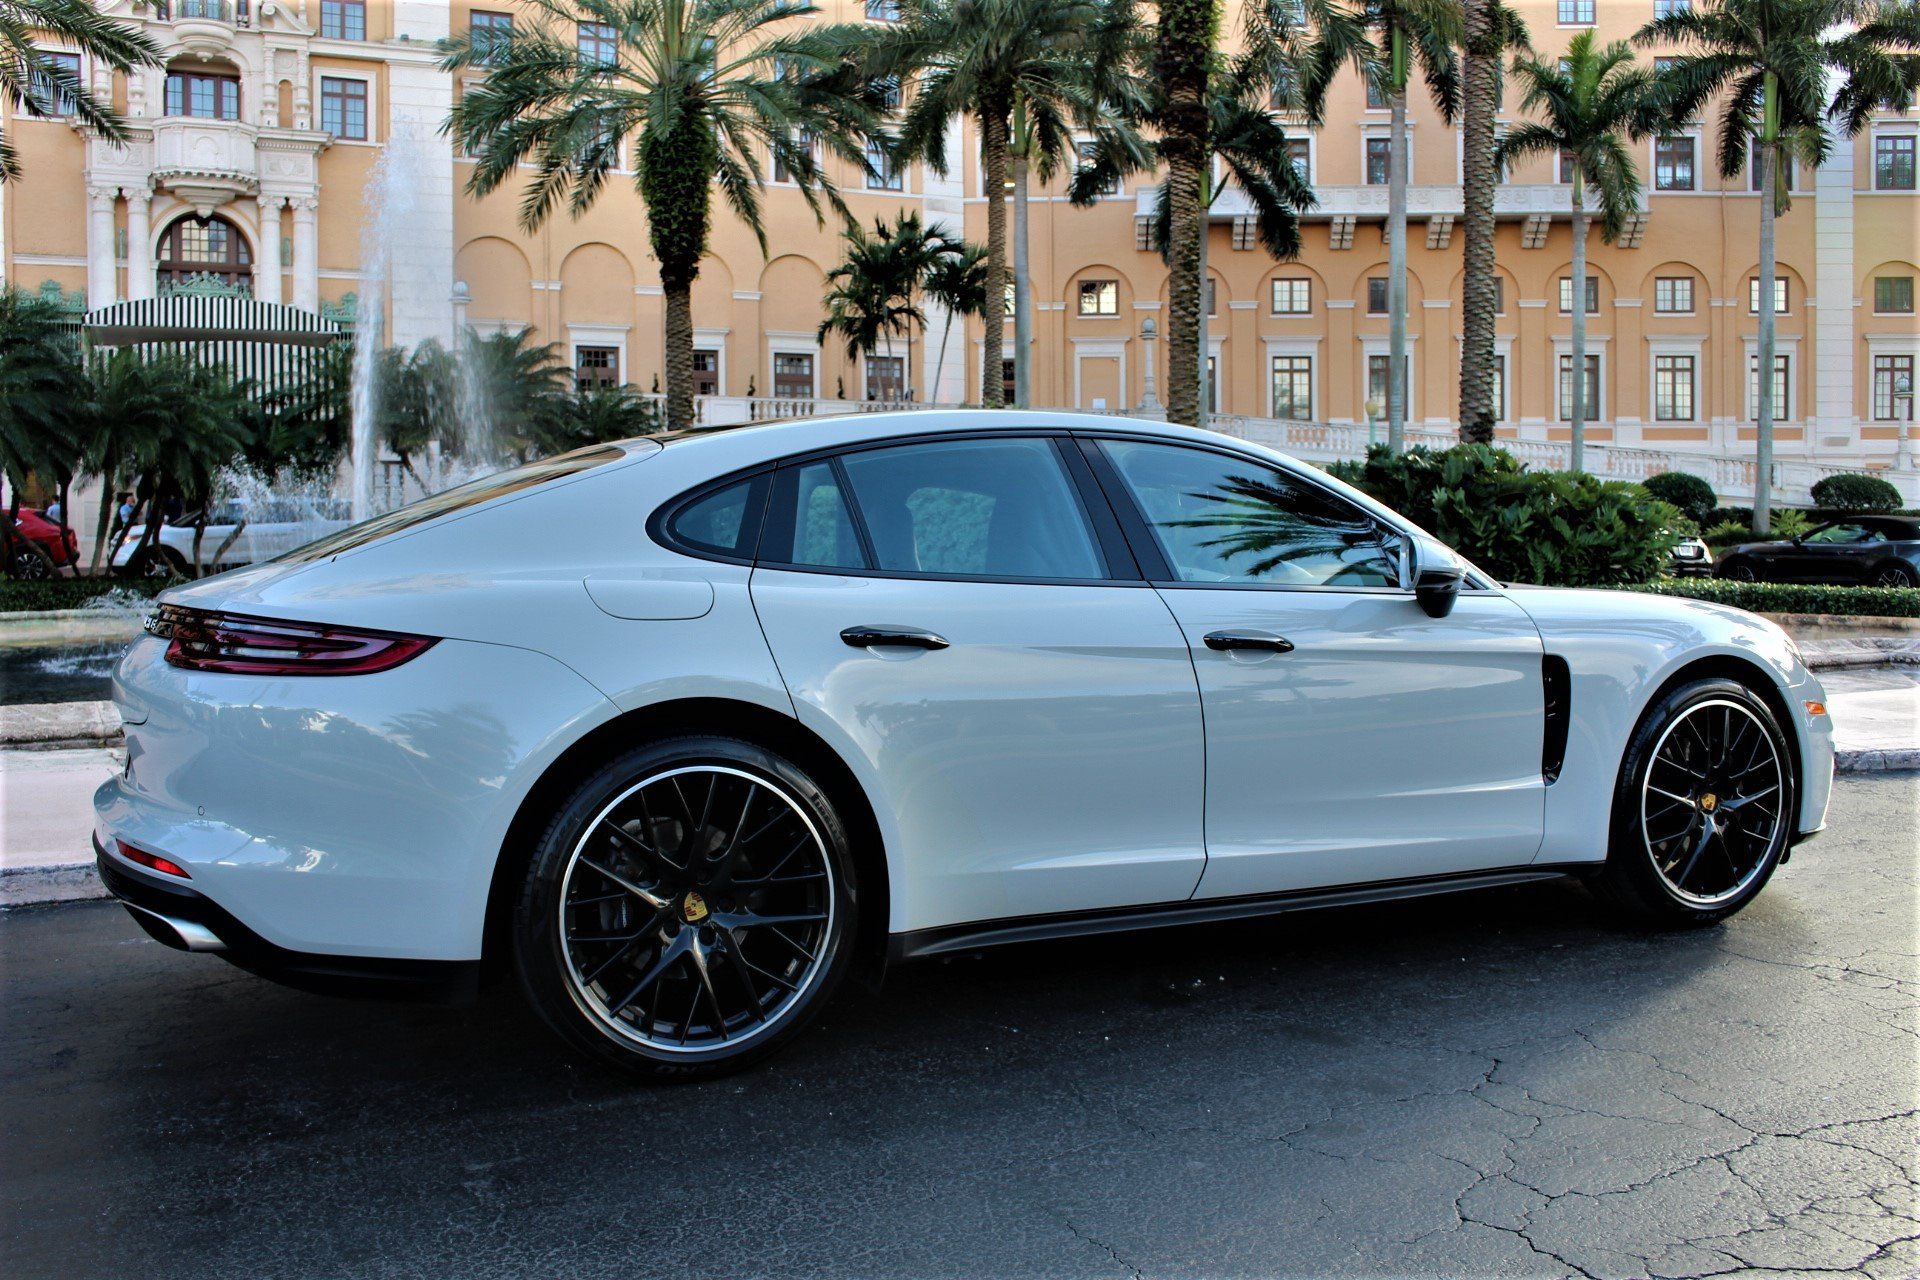 Used 2017 Porsche Panamera for sale Sold at The Gables Sports Cars in Miami FL 33146 3